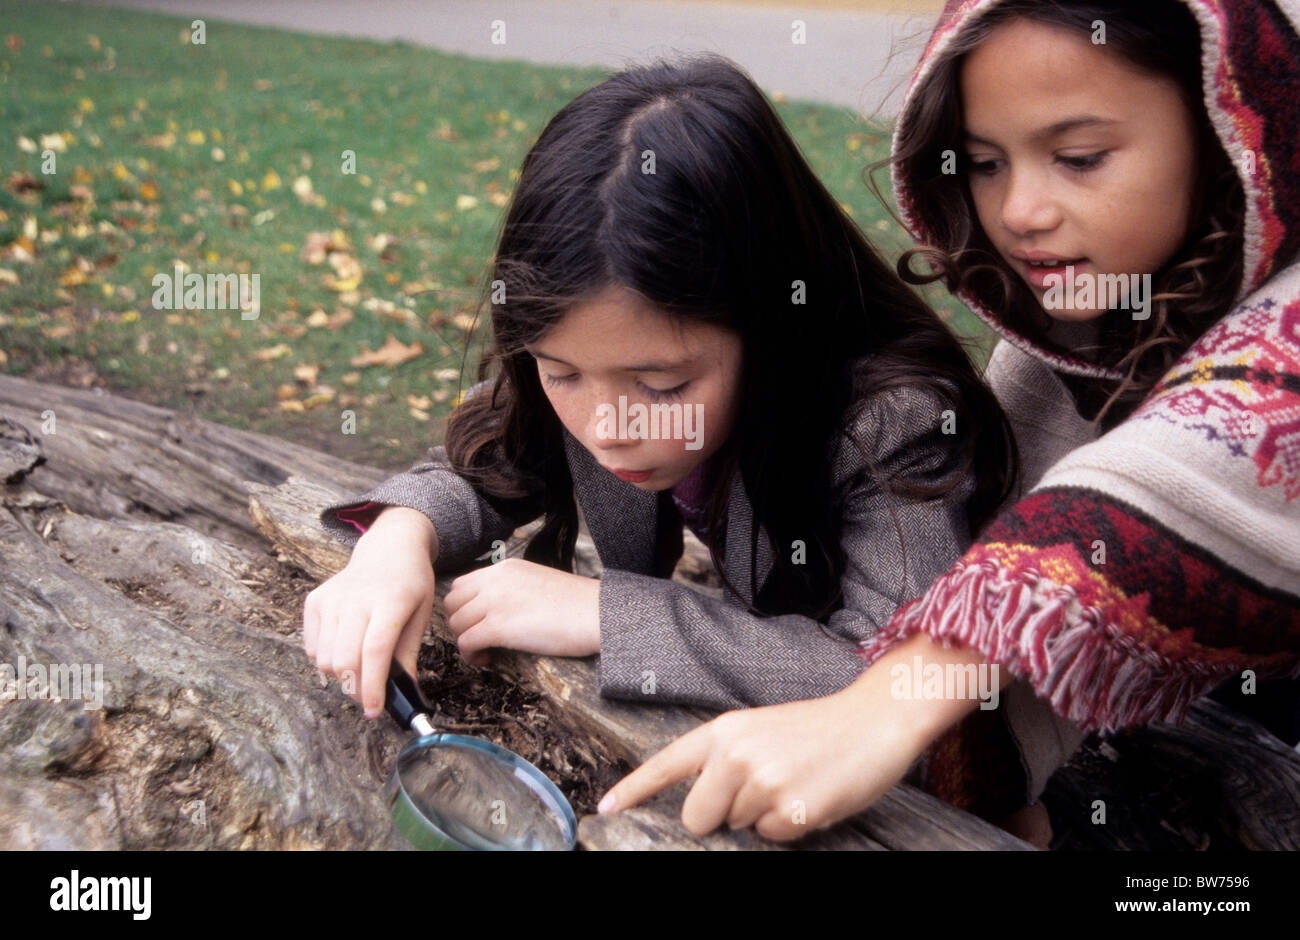 Best friends looking for creepy crawlies in a park. - Stock Image